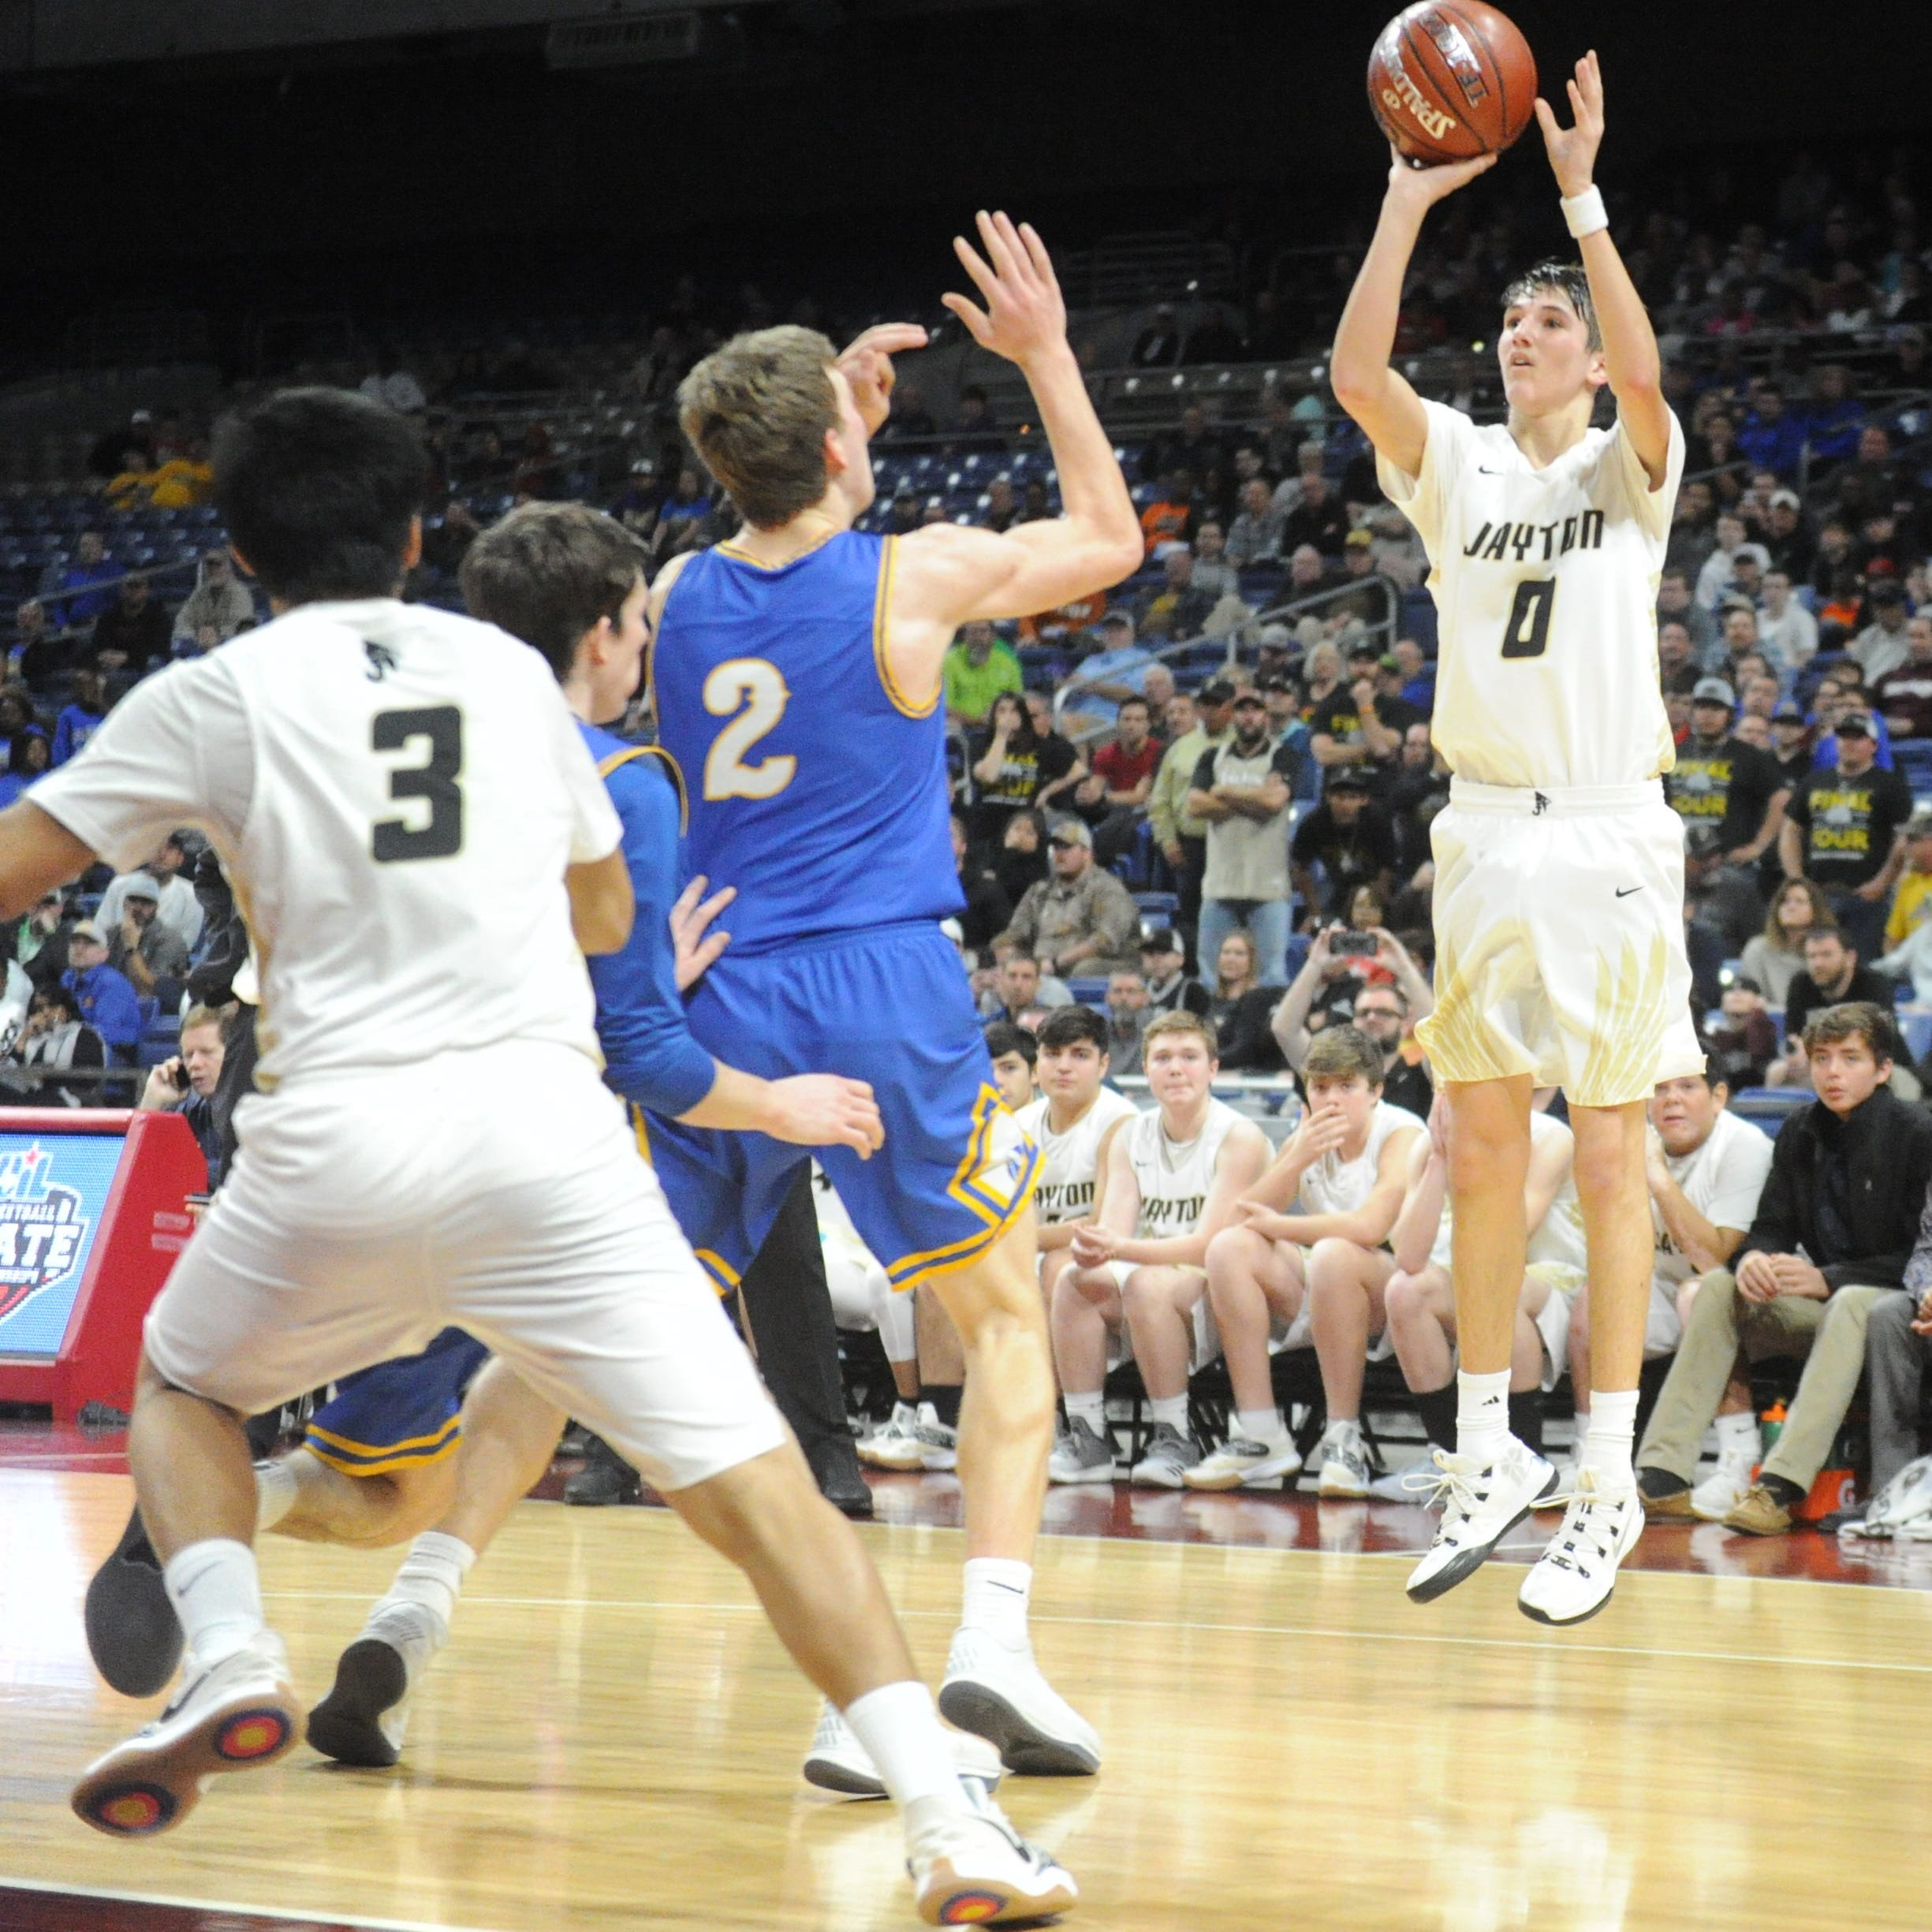 Extended business trip: Jayton boys hoops focused on state final following wild win